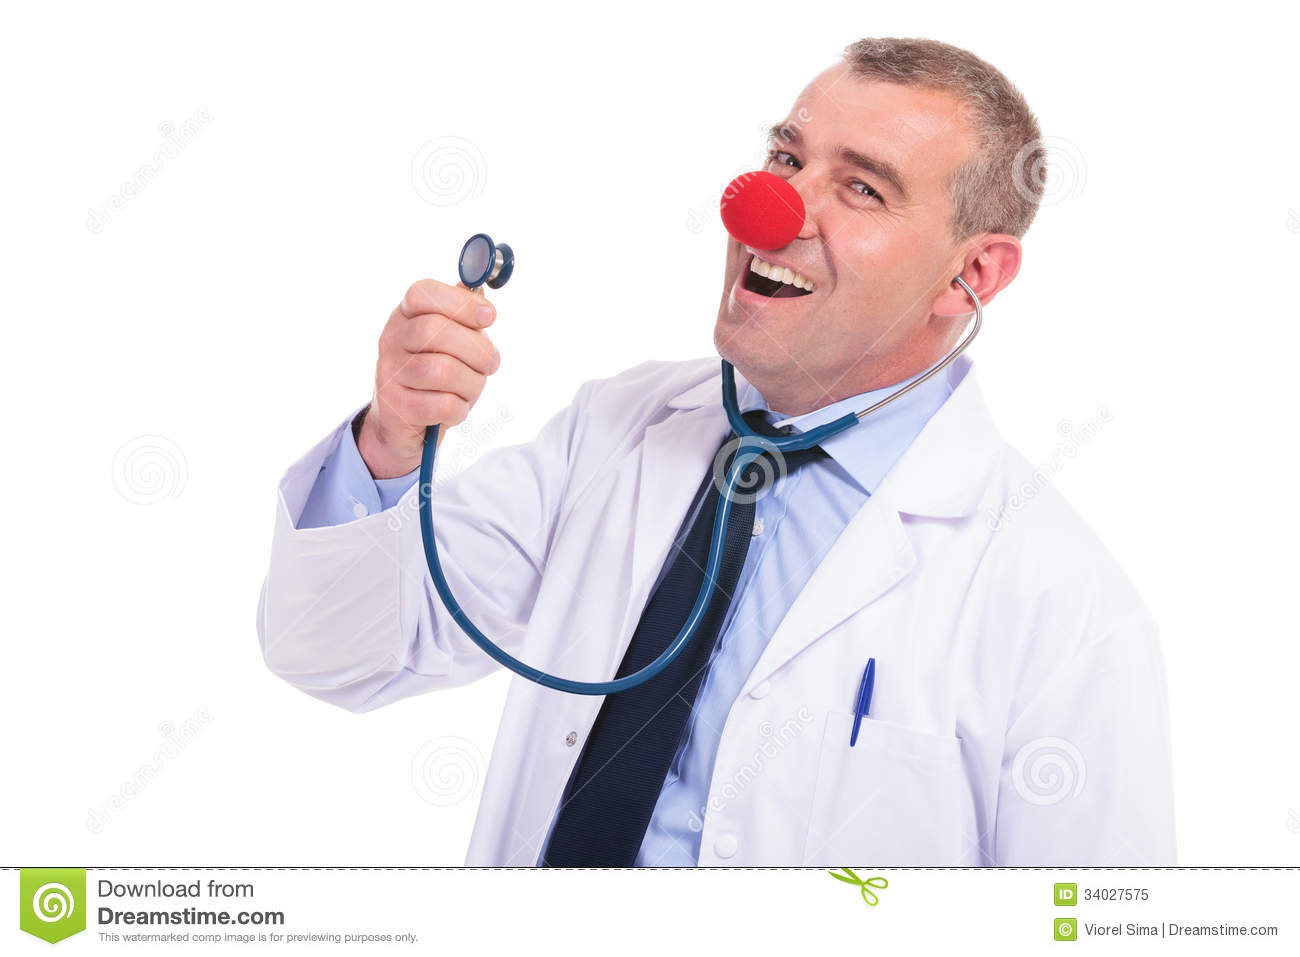 Image result for fake doctor